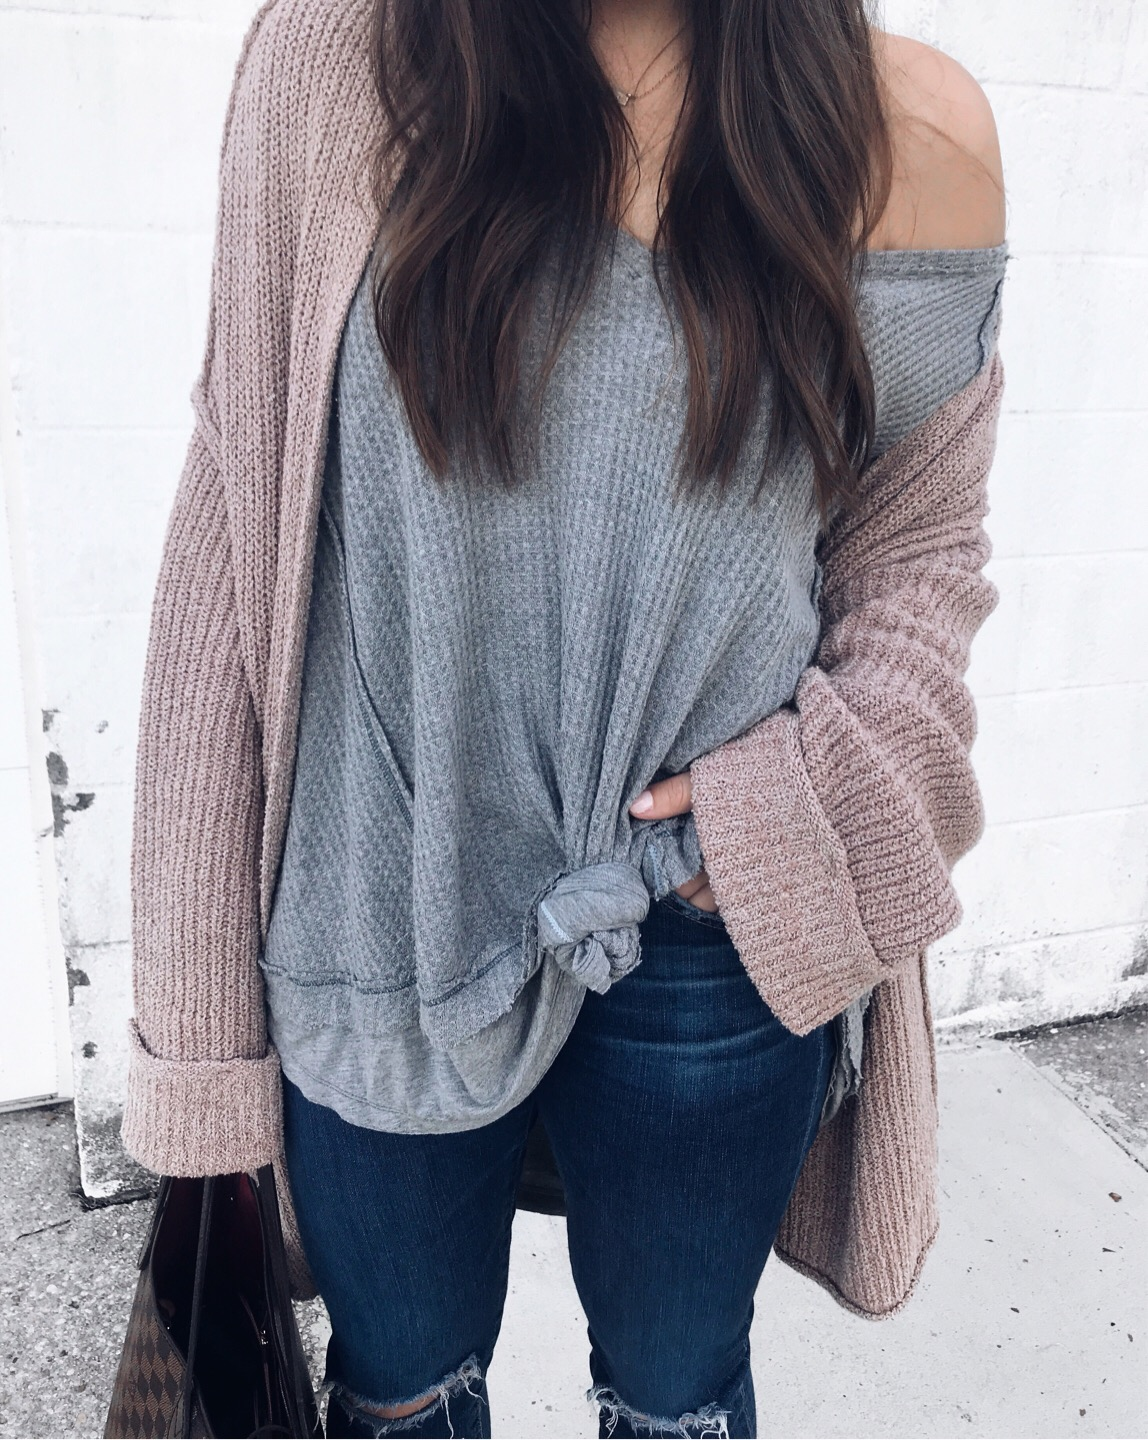 fall fashion / fall outfit idea / fall outfit inspiration / fall feels / fall vibes / fall layers / cozy cardigan / the best thermal for fall